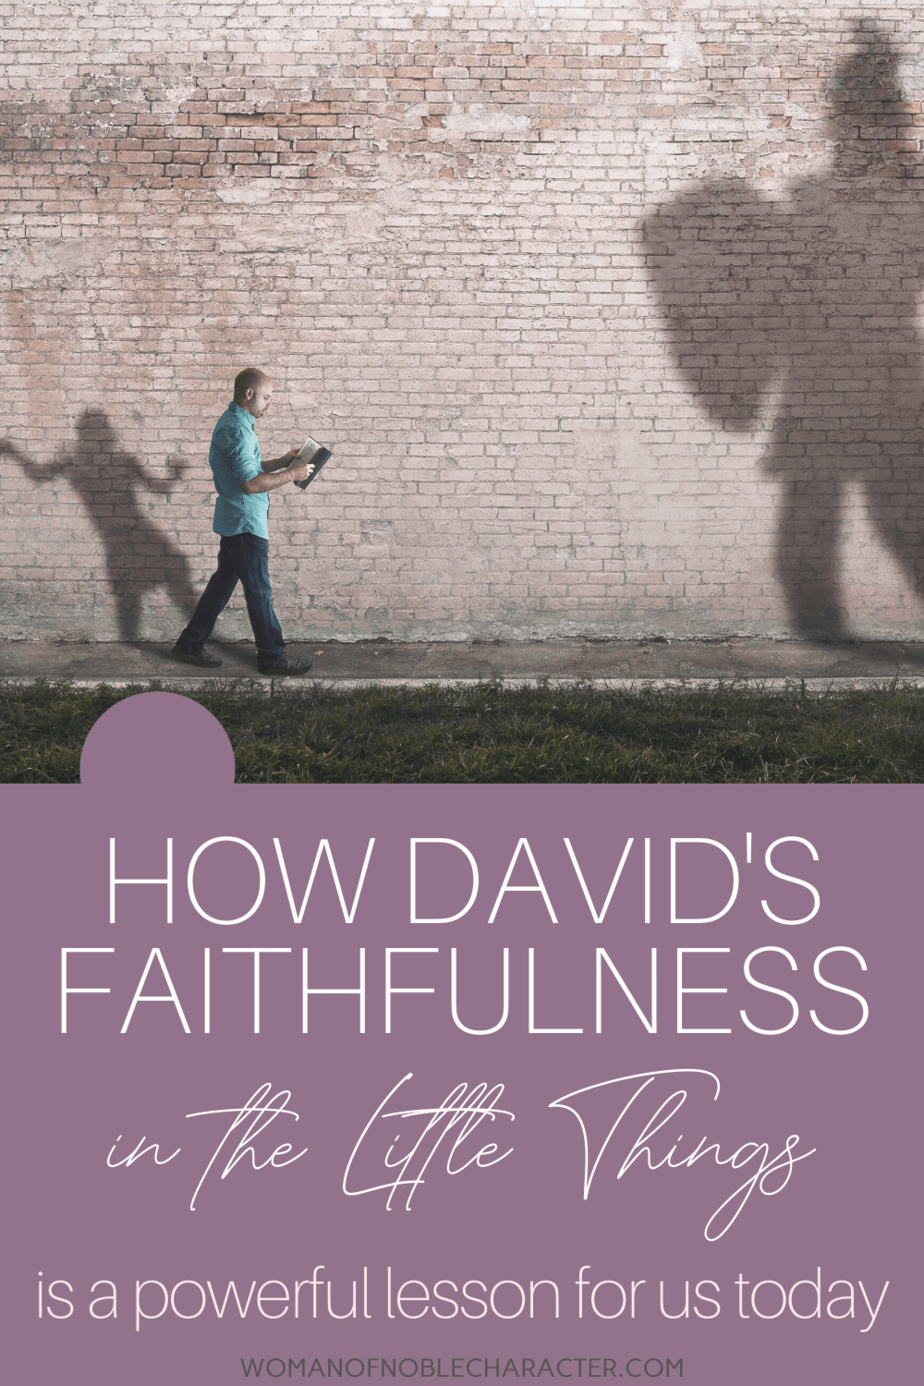 An image of a man walking down the street reading his Bible and the shadows of David and Goliath on the brick wall behind him - Faithful in the Little Things